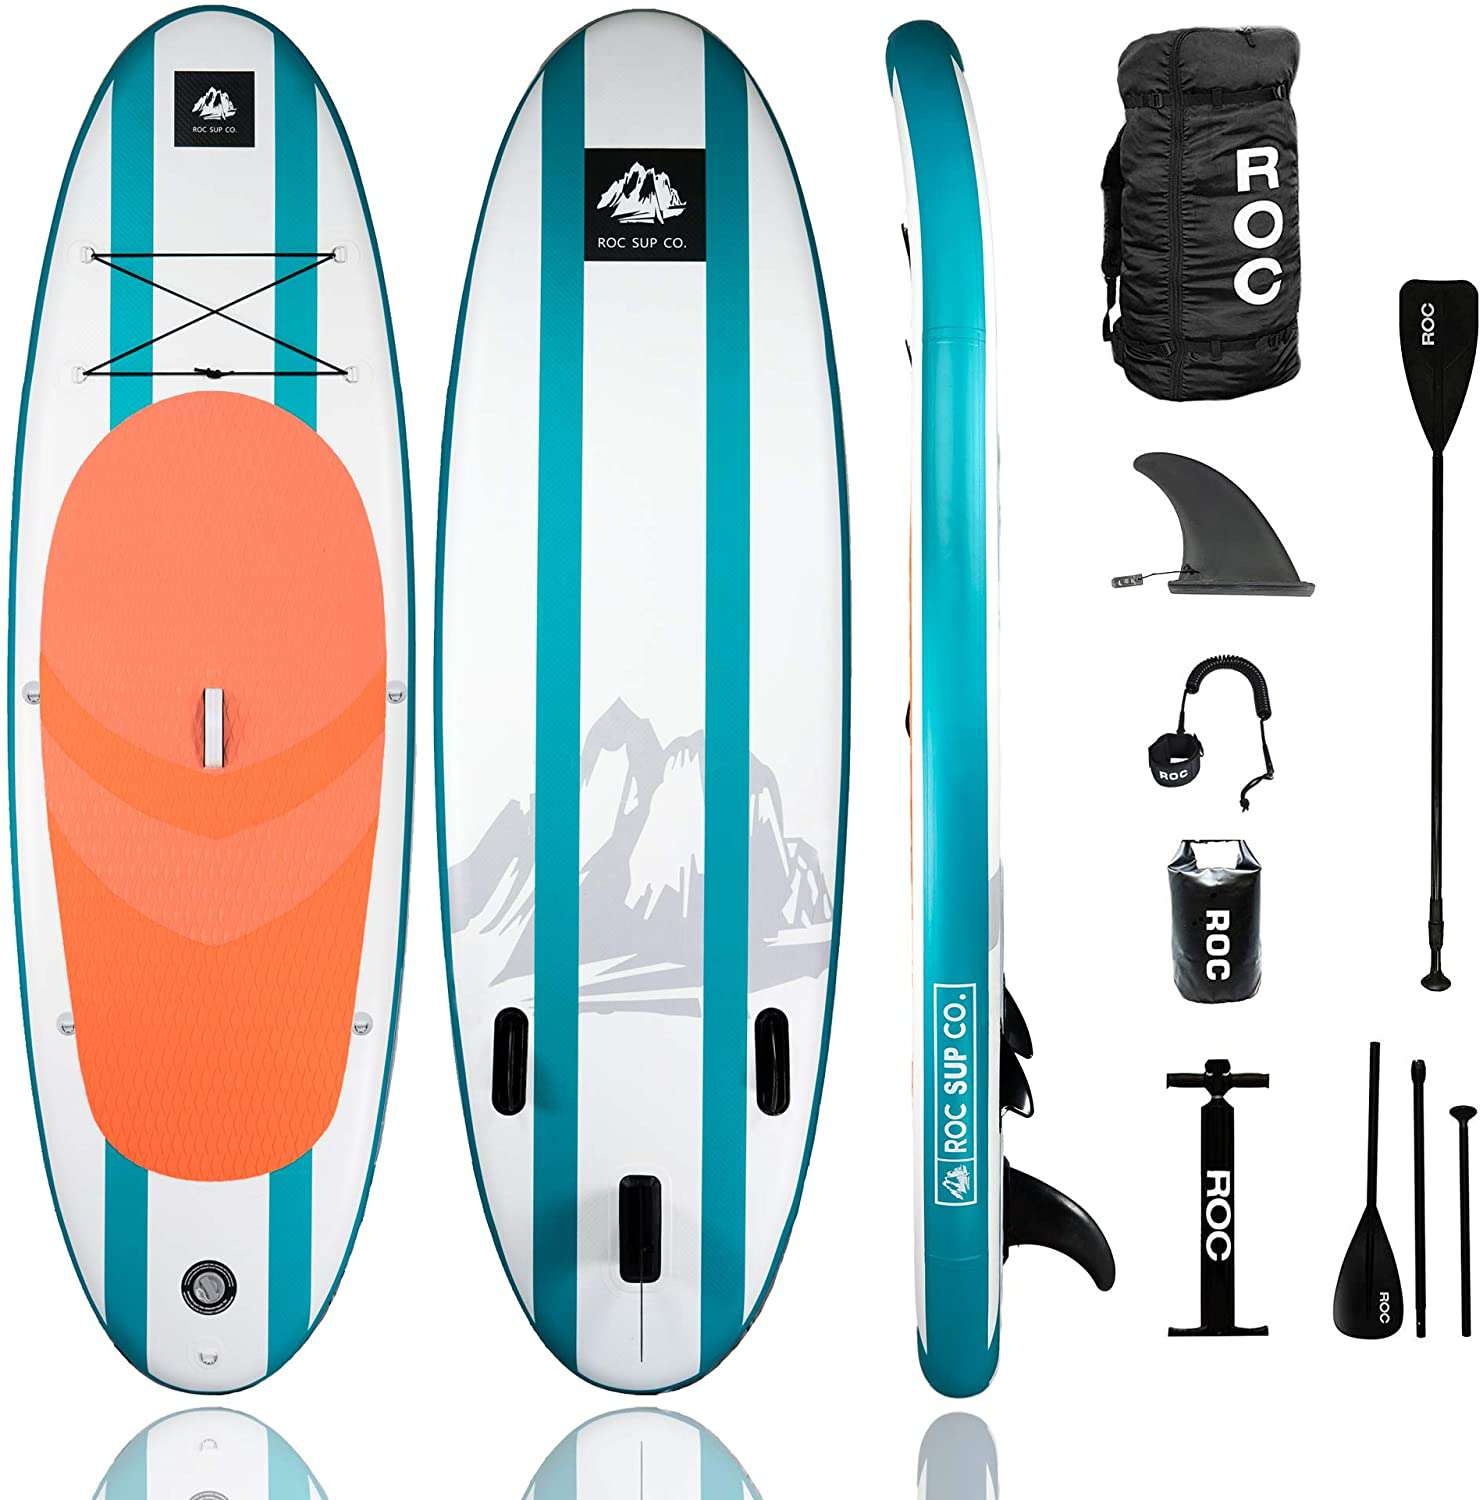 Roc 10' Scout Inflatable Stand Up Paddle Board